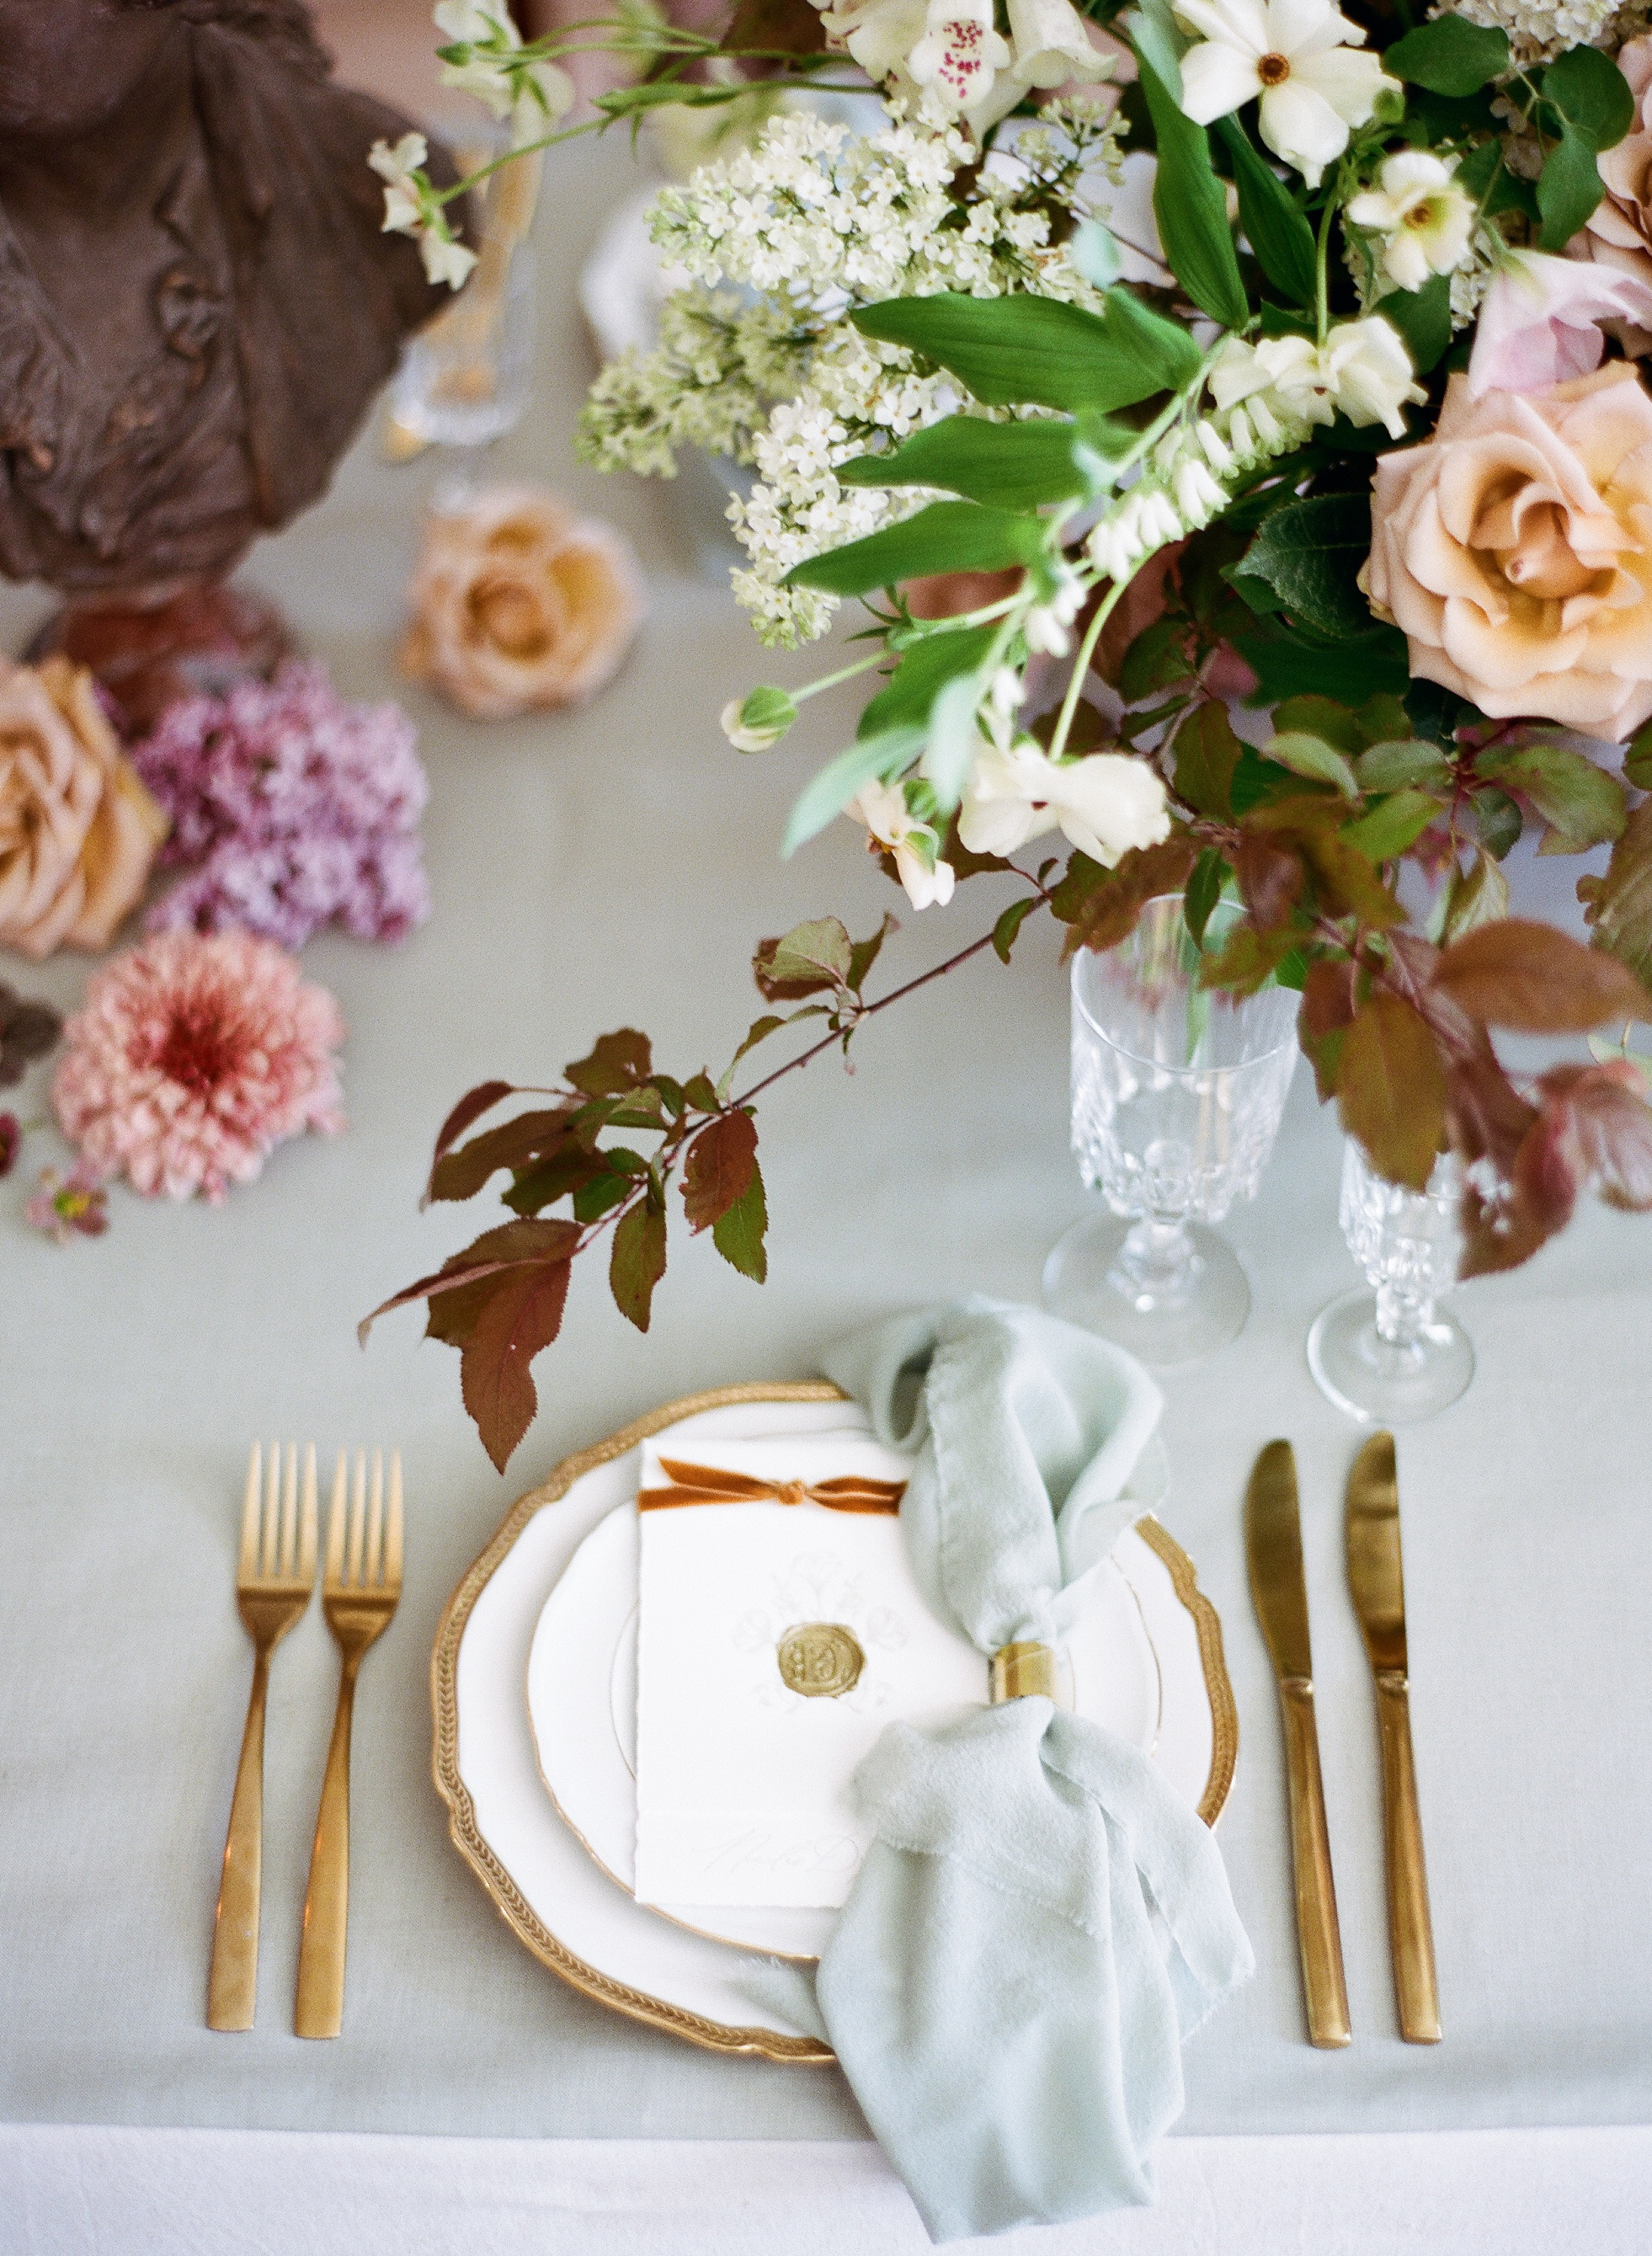 An elegant place setting arranged for a wedding reception at Chateau de Varennes; Sylvie Gil Photography